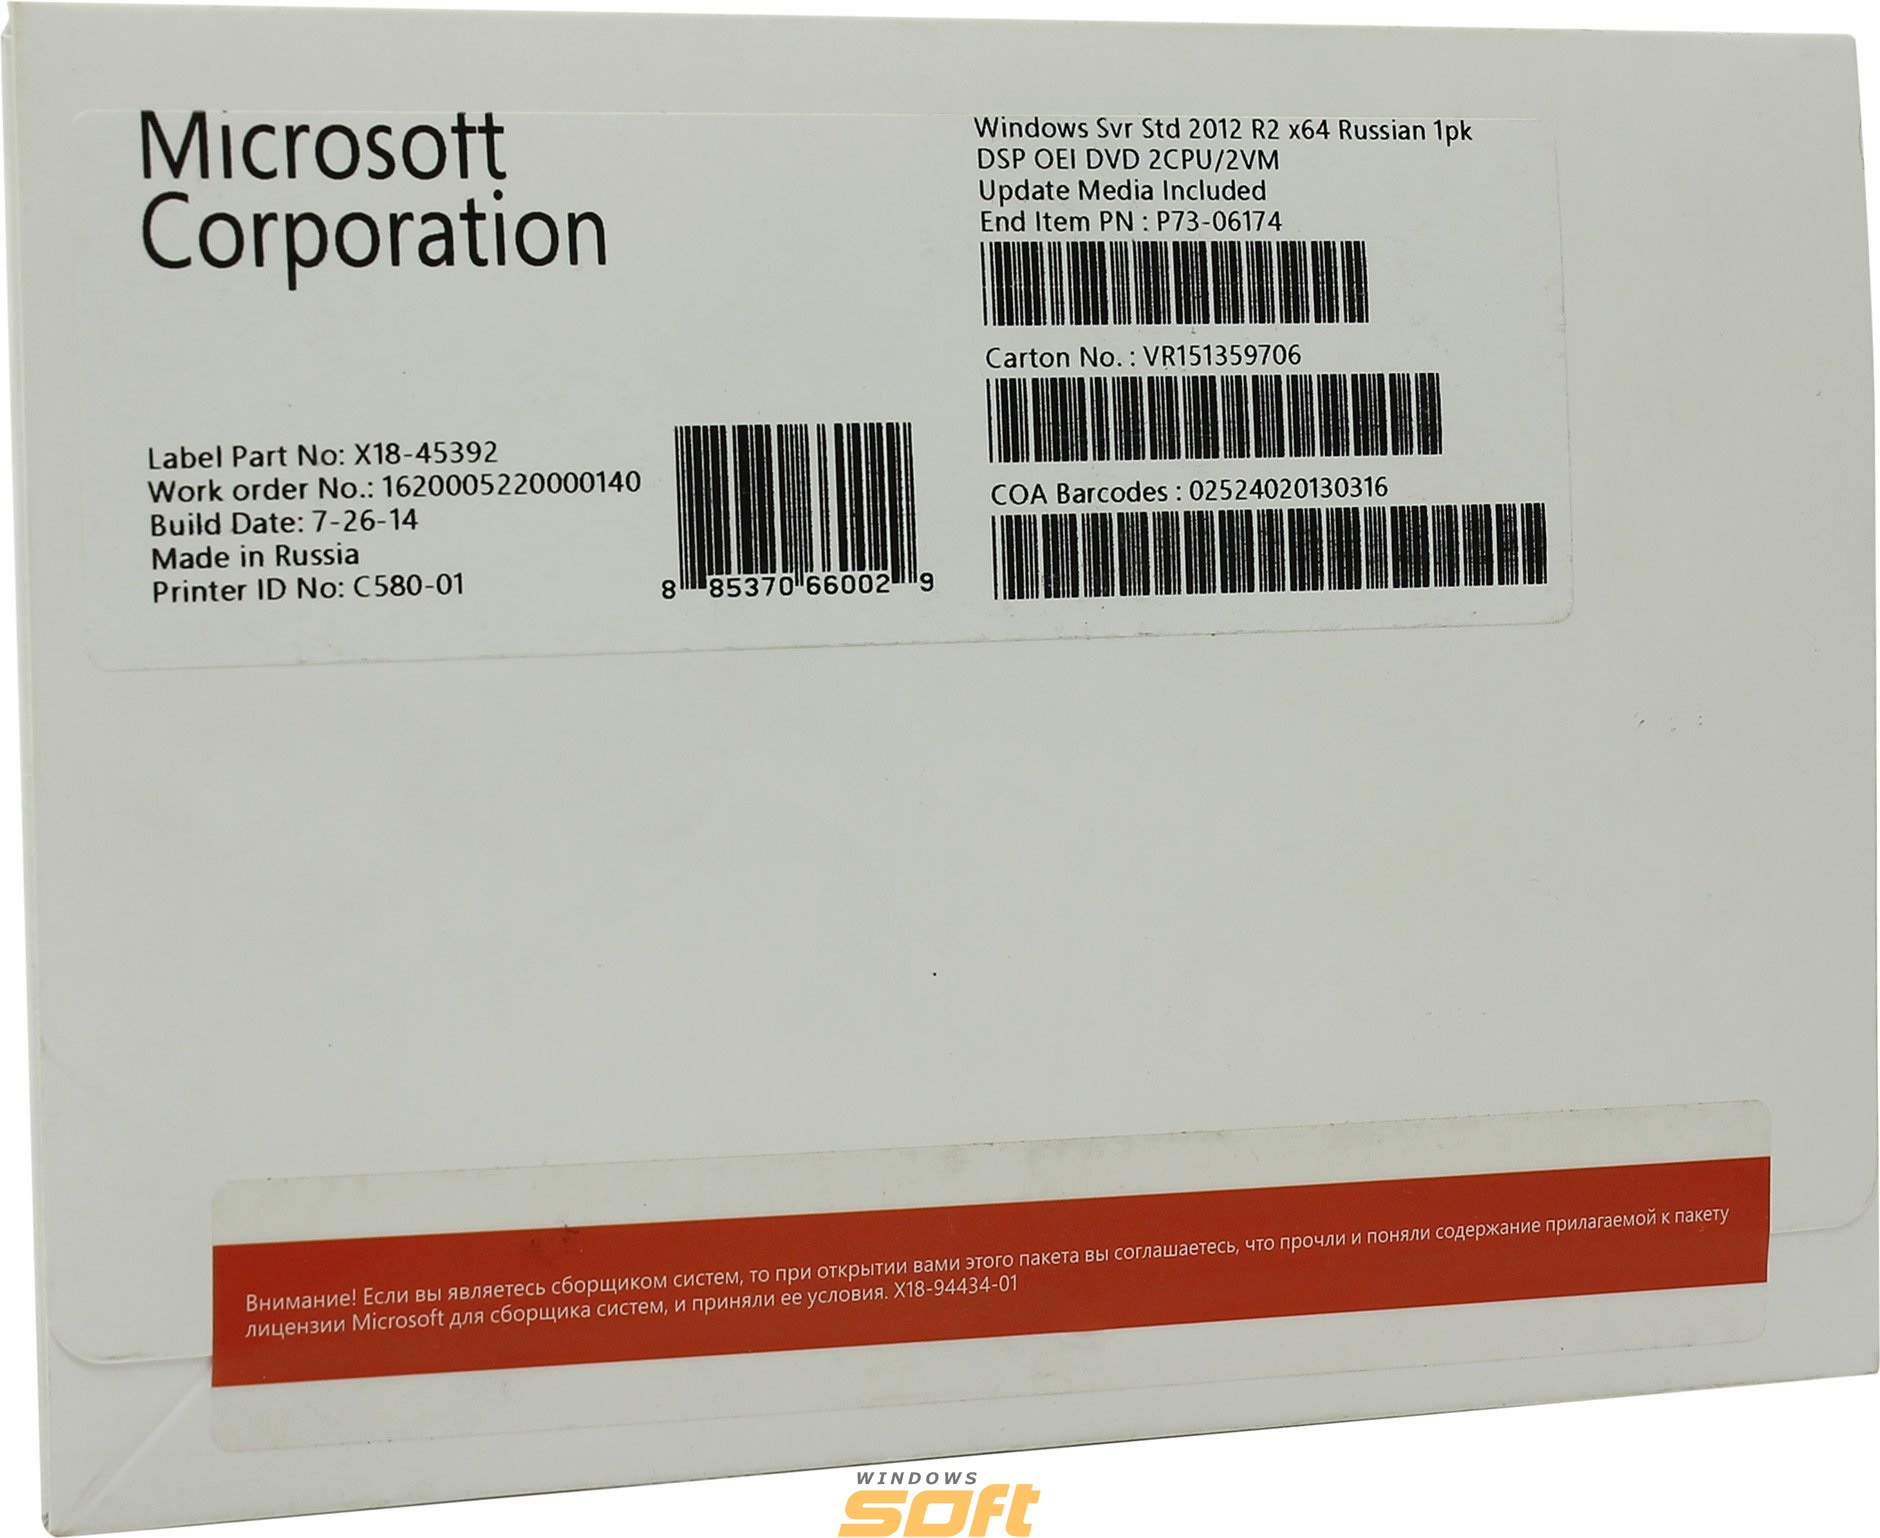 Купить Microsoft Windows Server Standard 2012 x64 ENG 1pk DSP OEI DVD 2CPU/2VM P73-05328 по доступной цене